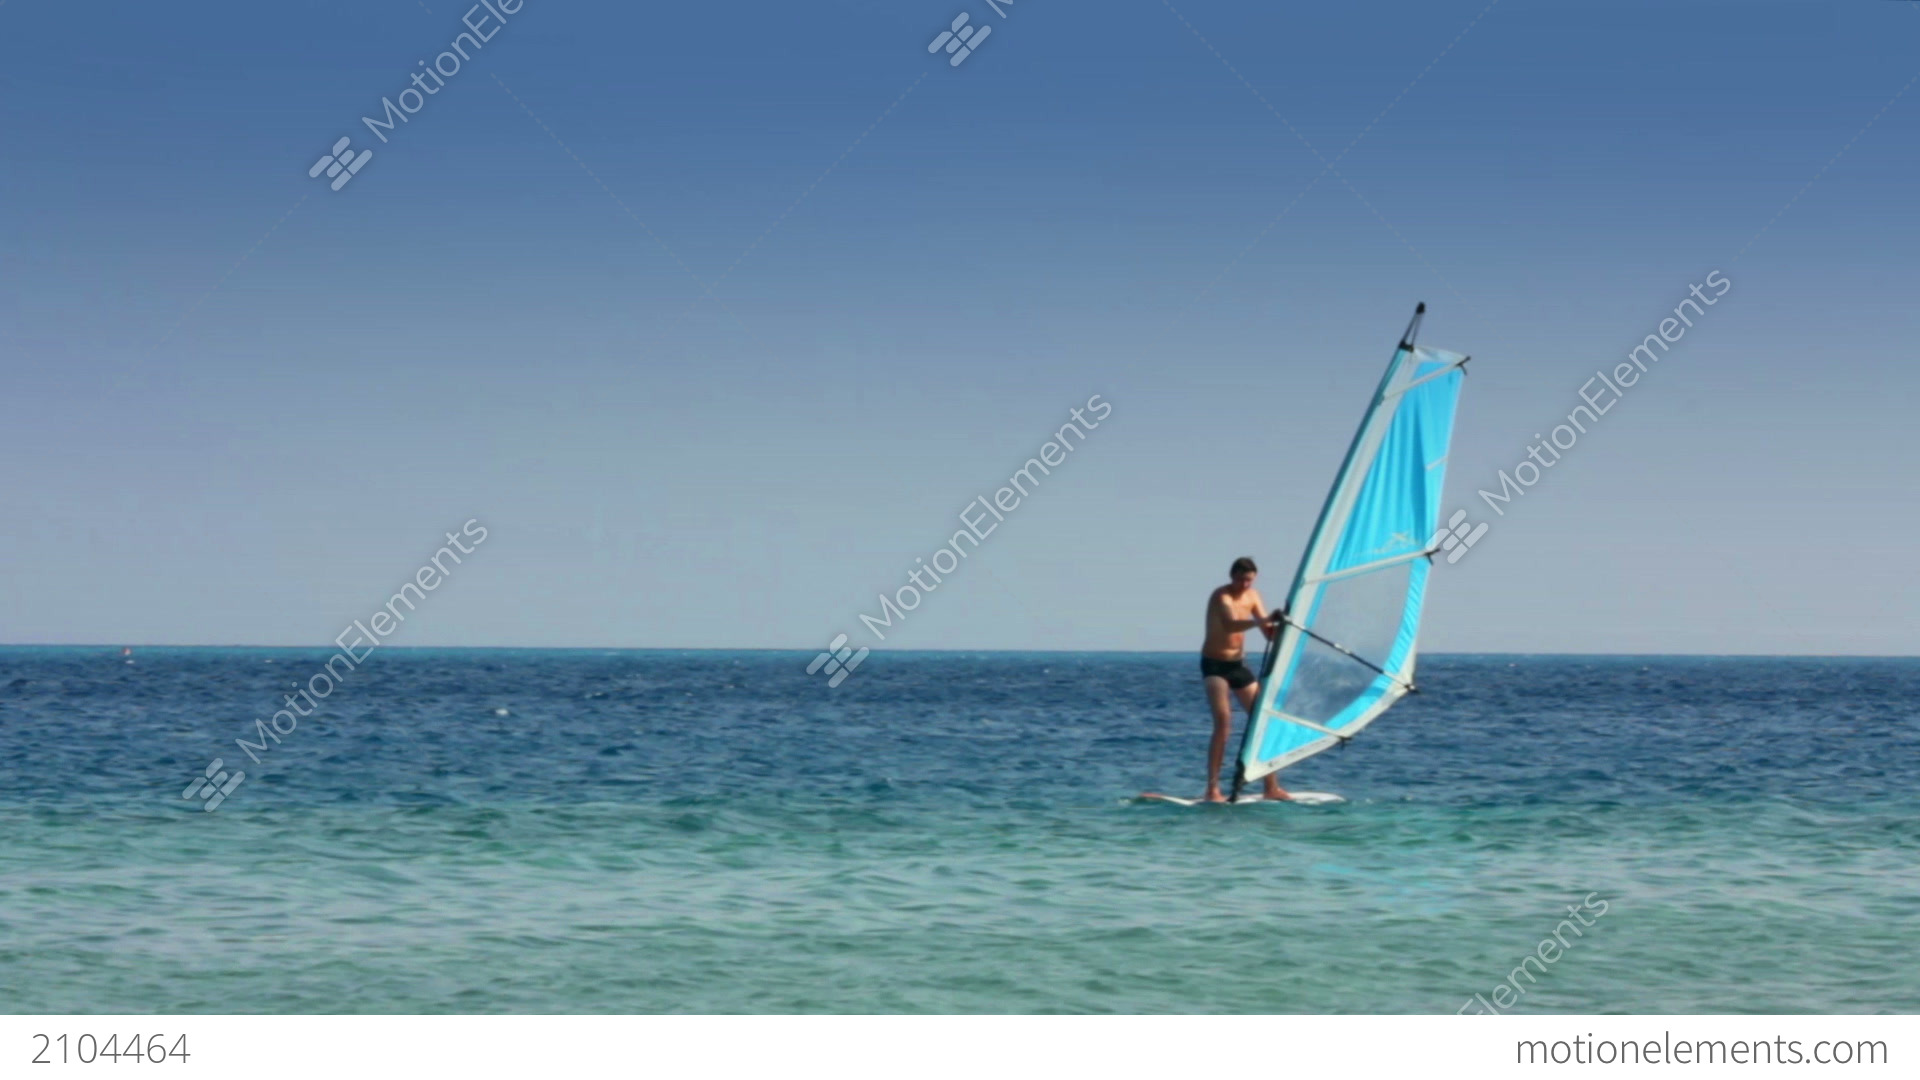 how to ride a windsurfer